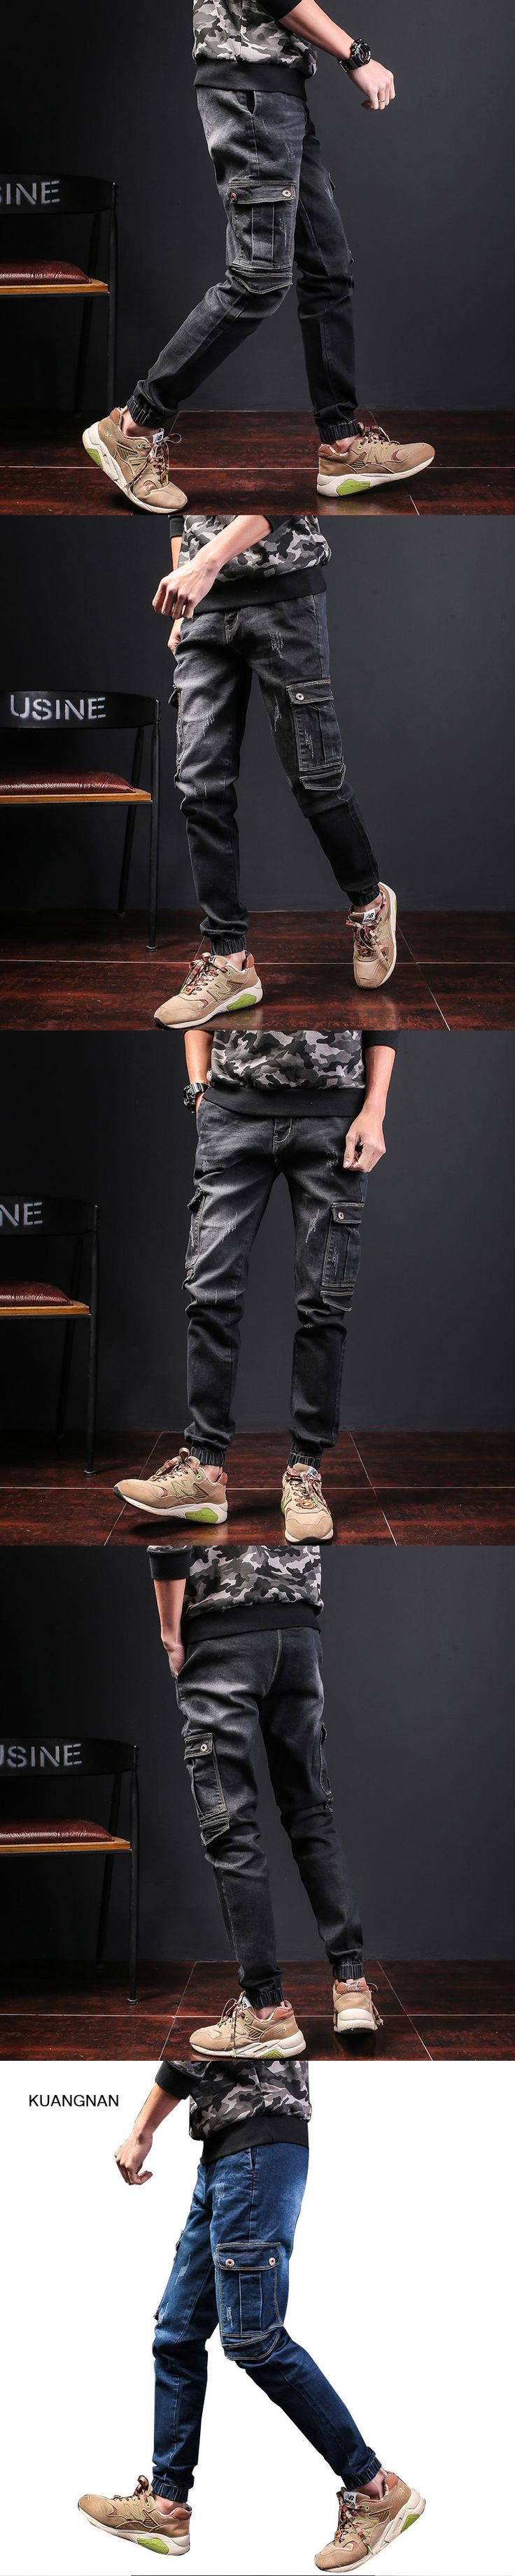 Size 28-40 Male Cargo Jeans Pant Street Fashion Hiphop Casual High Quality Men Slim Fit Denim Trousers